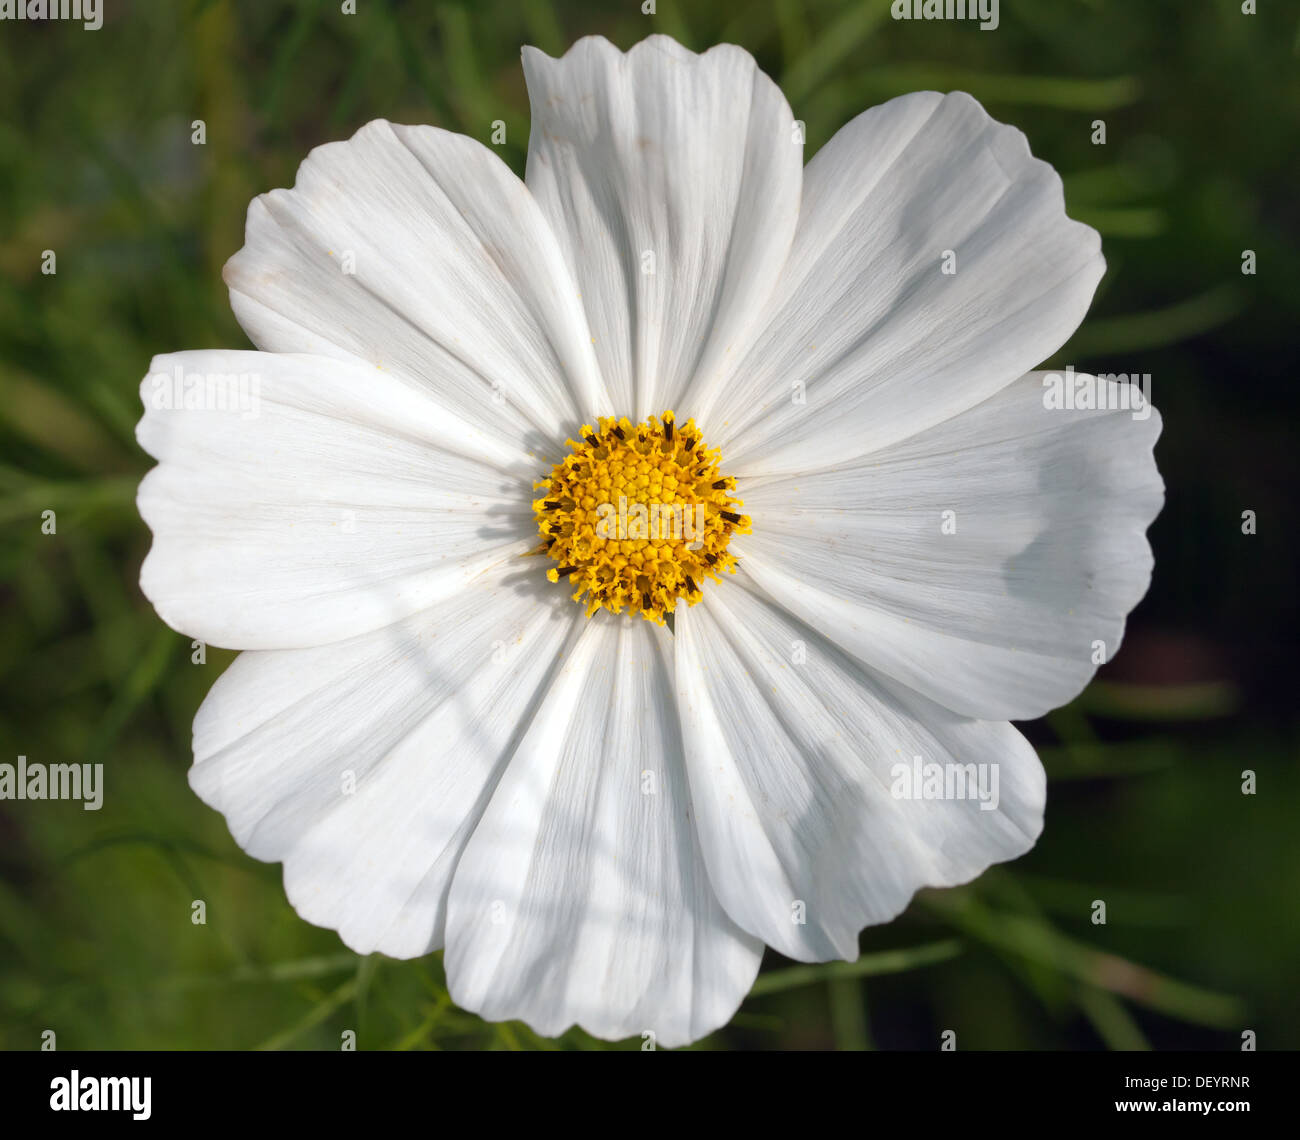 Close-up view of a single flower of a white  Mexican aster 'Sonata White' - Stock Image